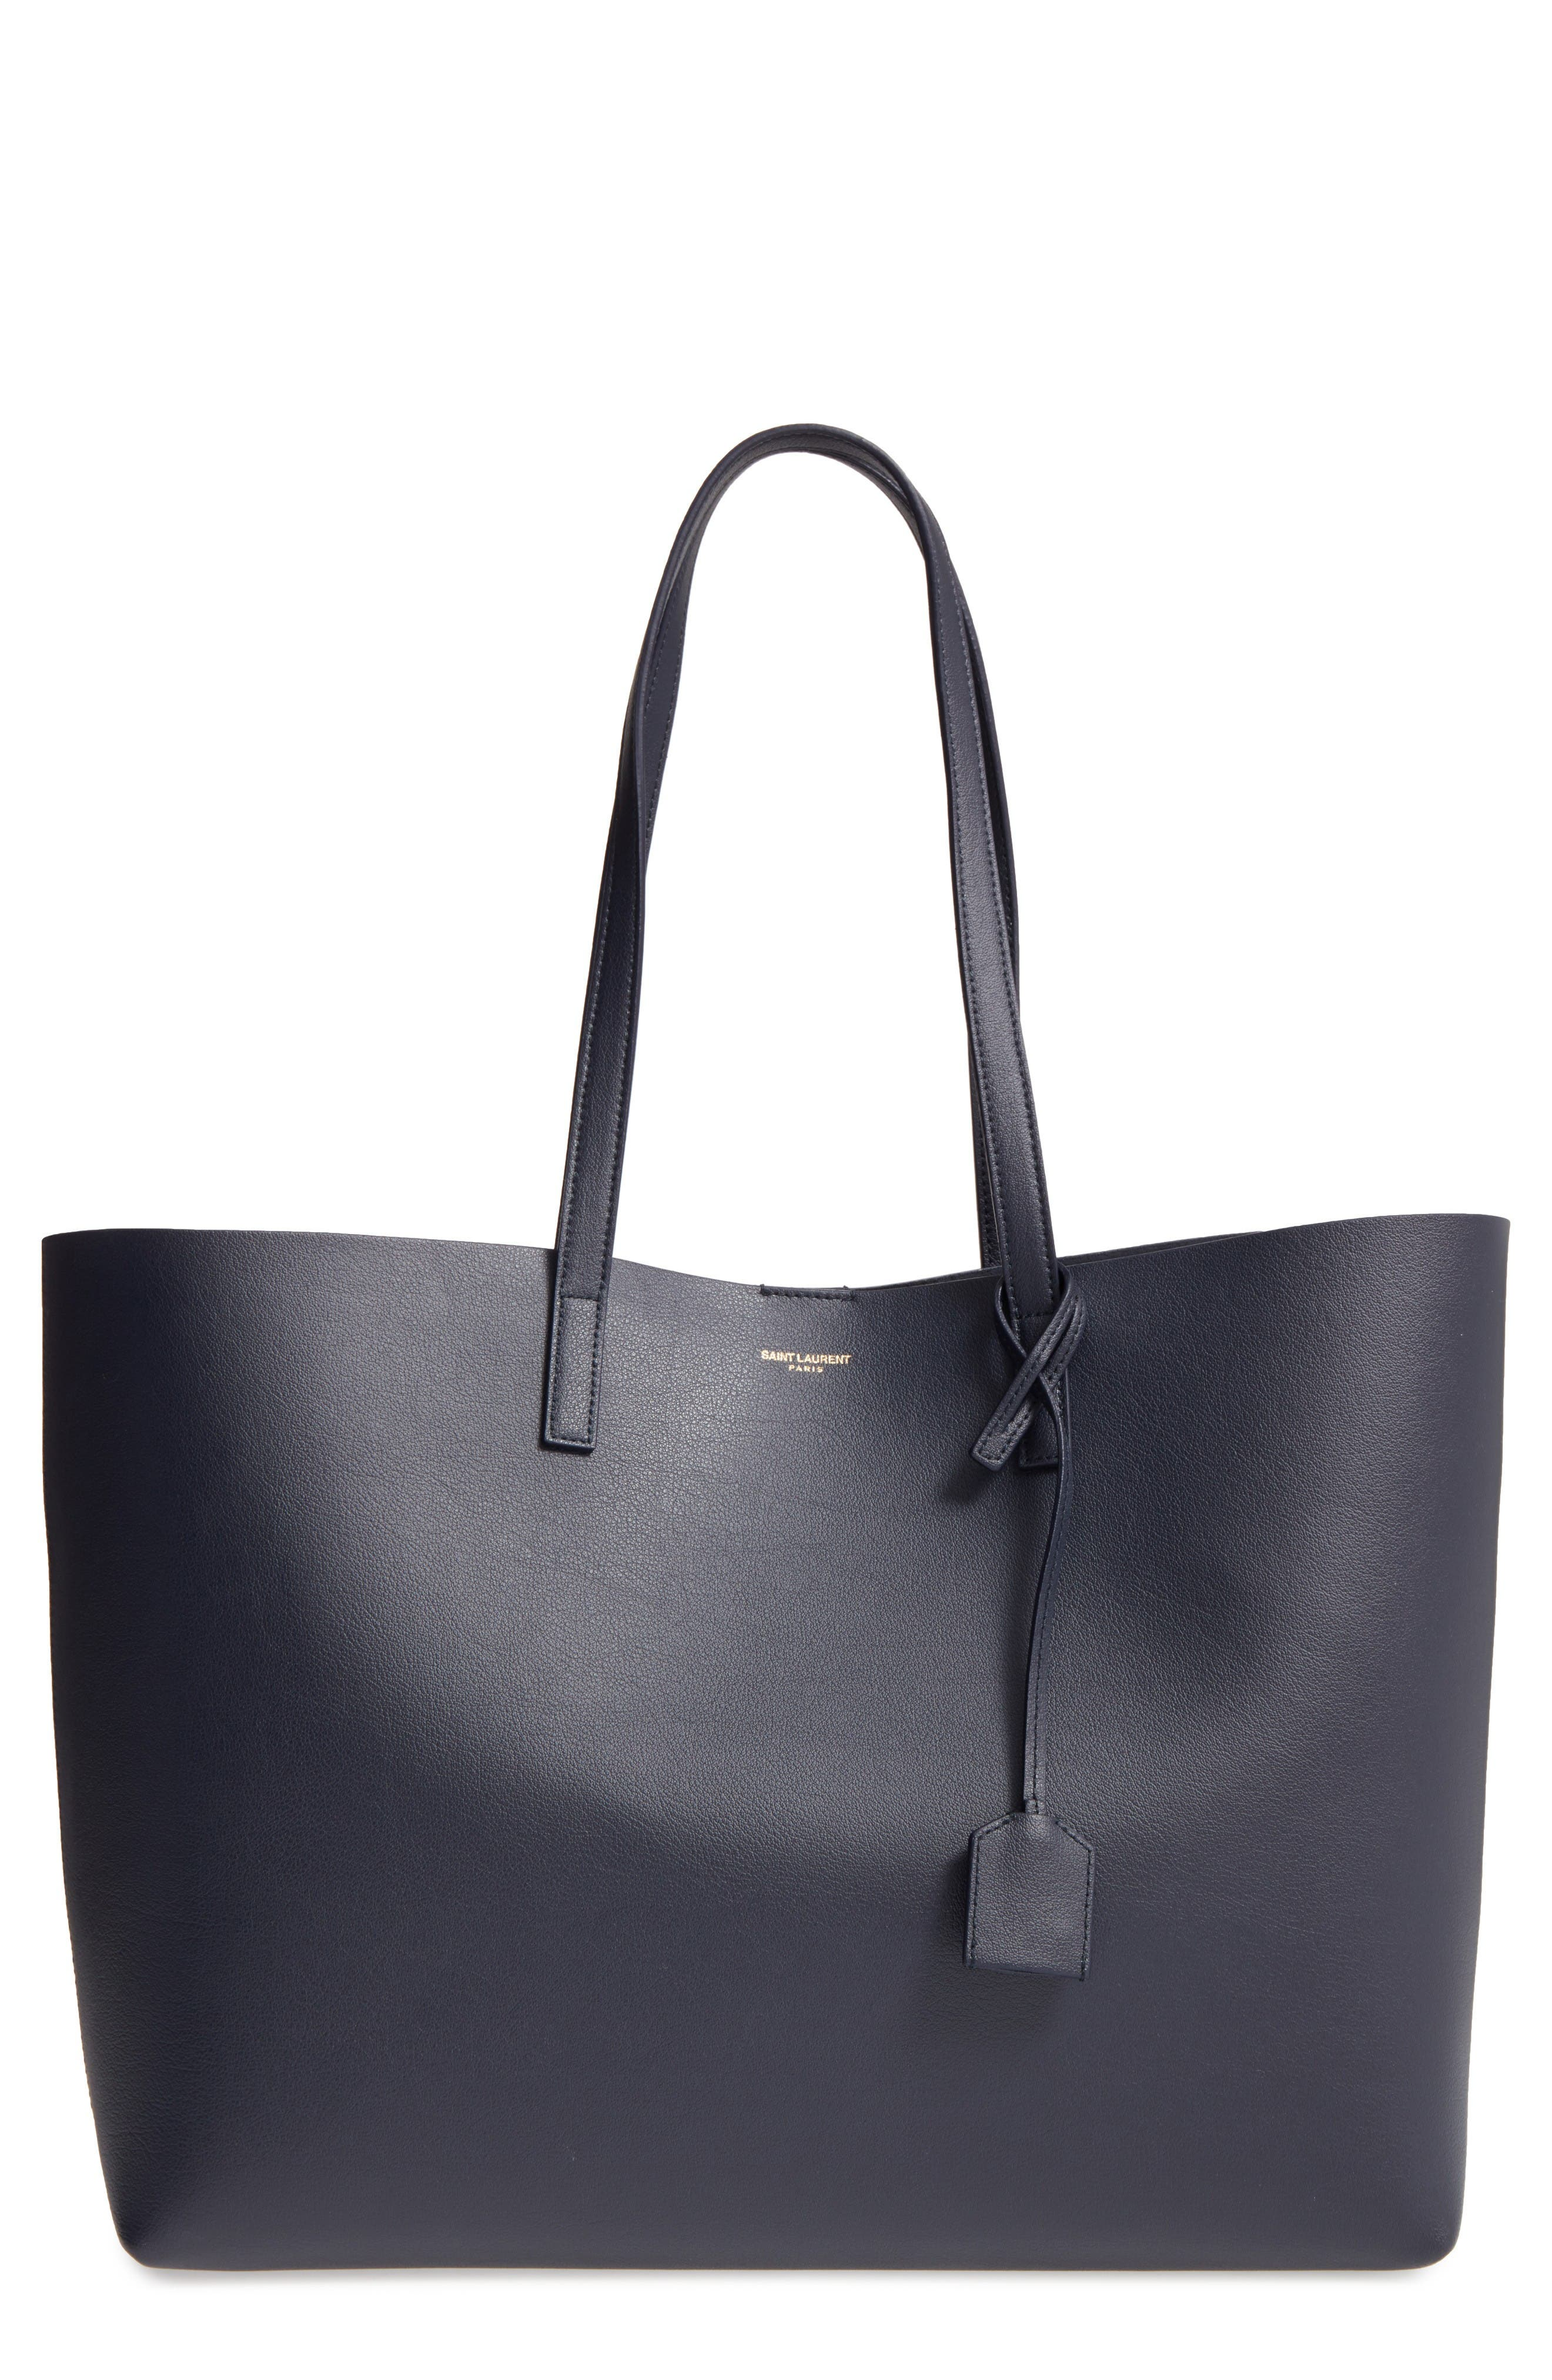 Extra-Large Tote Bags for Women: Canvas, Leather, Nylon & More ...